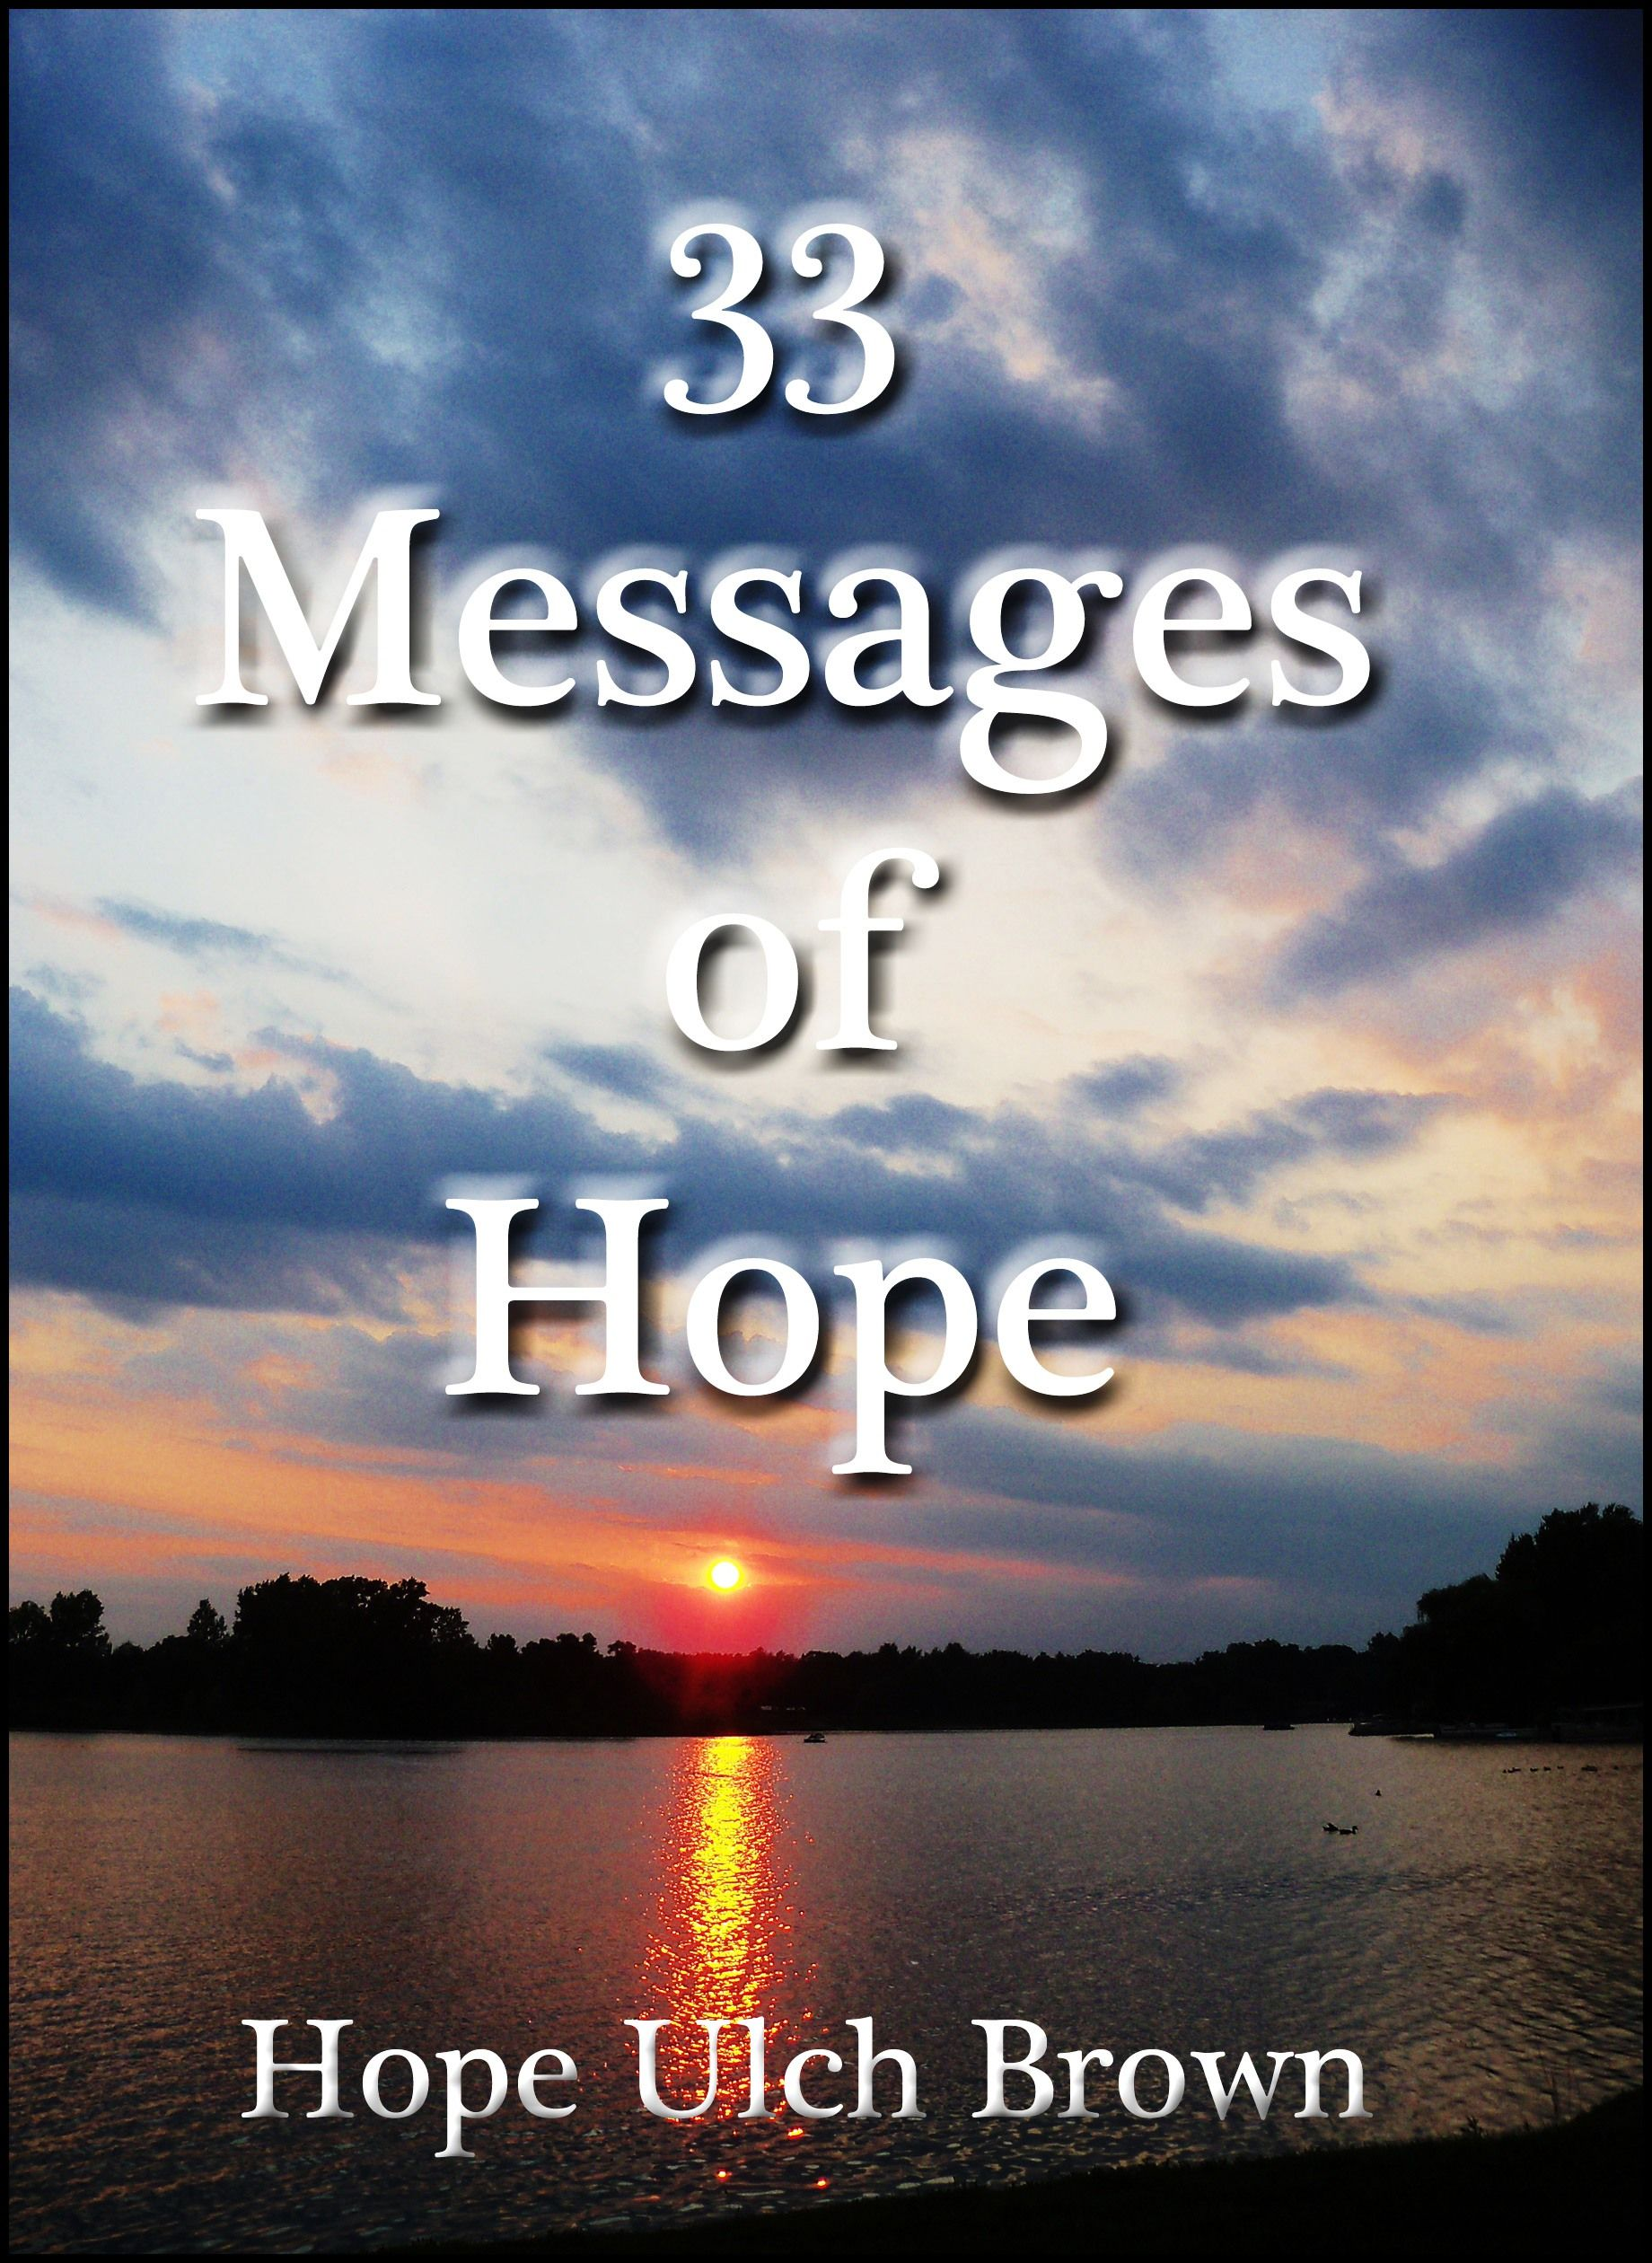 Thirty Three Poems Of Daily Messages To Provide Spiritual